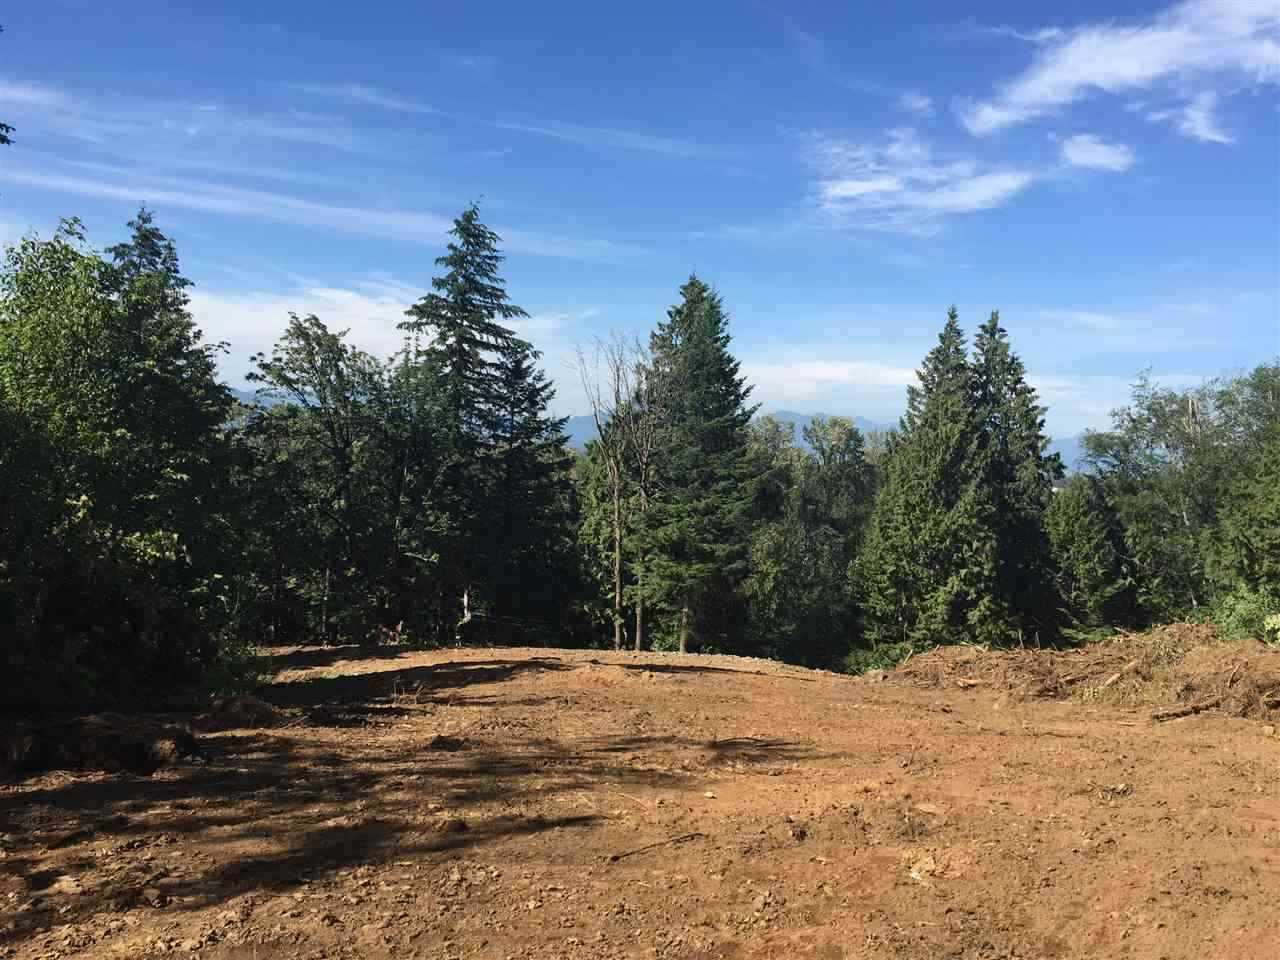 Rare find! This private, 1.4 acre view property is a stone's throw from Vedder River. Either build your dream home or it's a great opportunity for subdivision. Geo reports, environmental survey done for a 4 lot split. Subdivision application already submitted. All services at lot line.